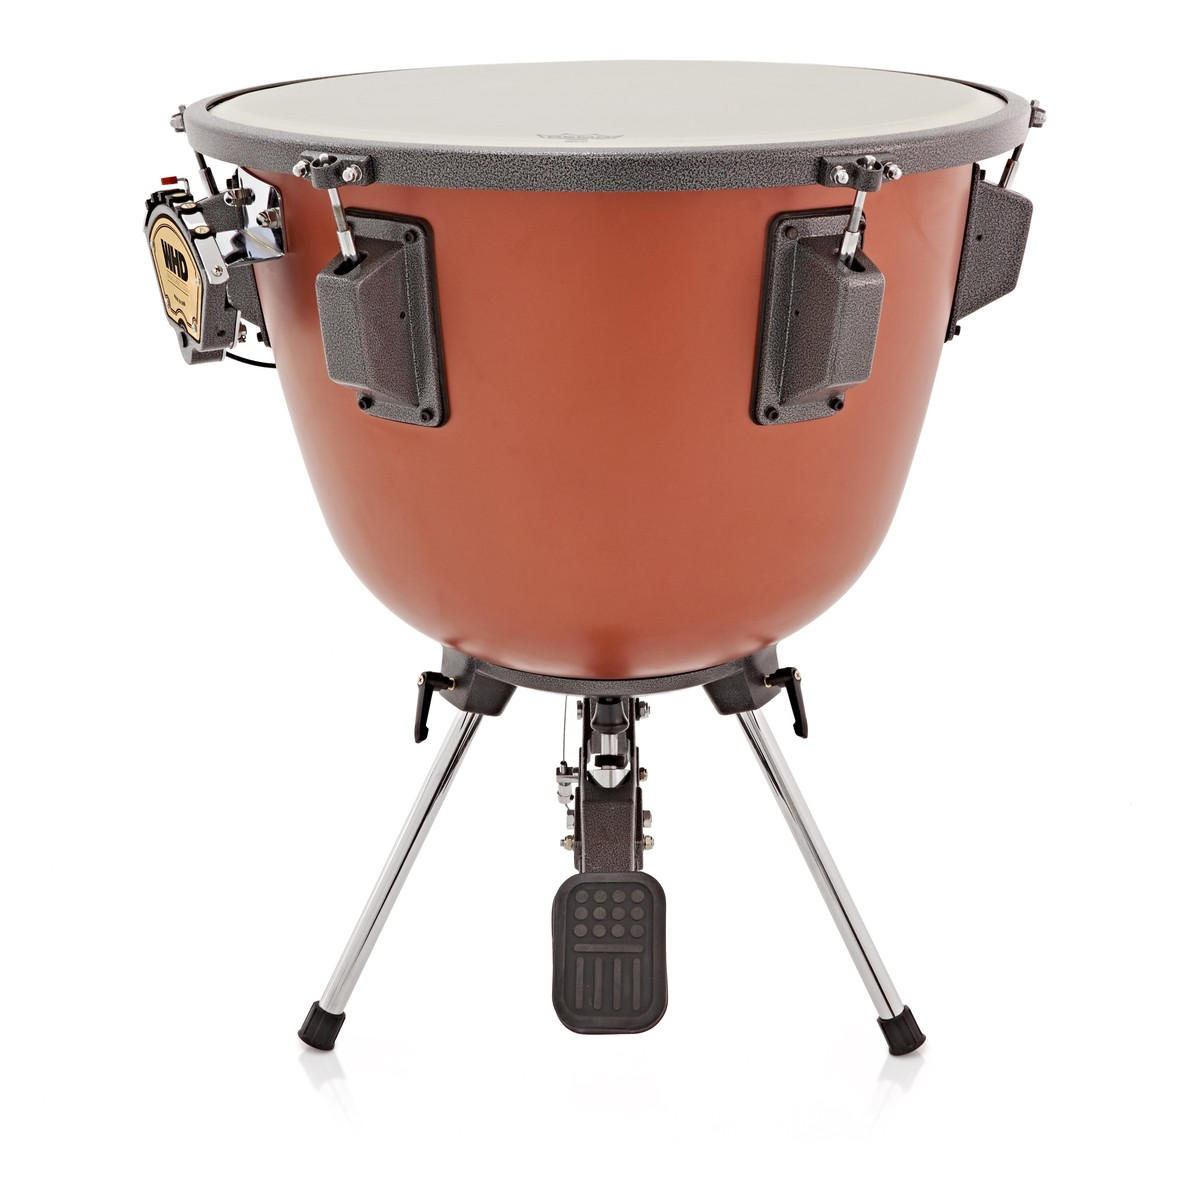 whd 26 professional orchestral timpani at gear4music